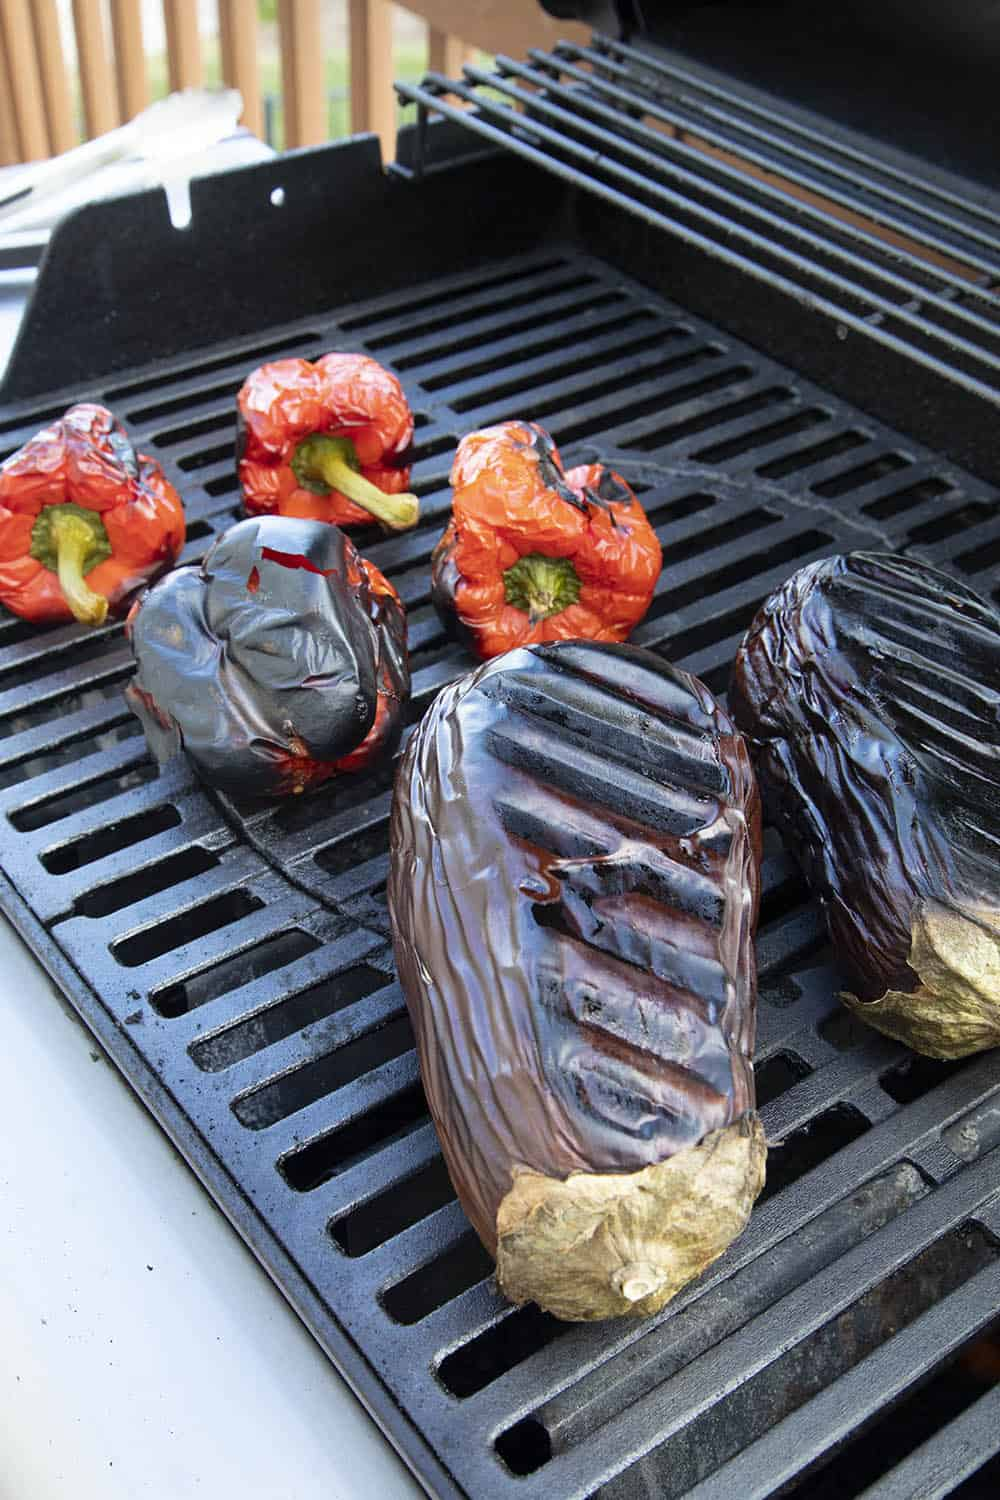 Roasted eggplants and red bell peppers on the grill, just about done cooking